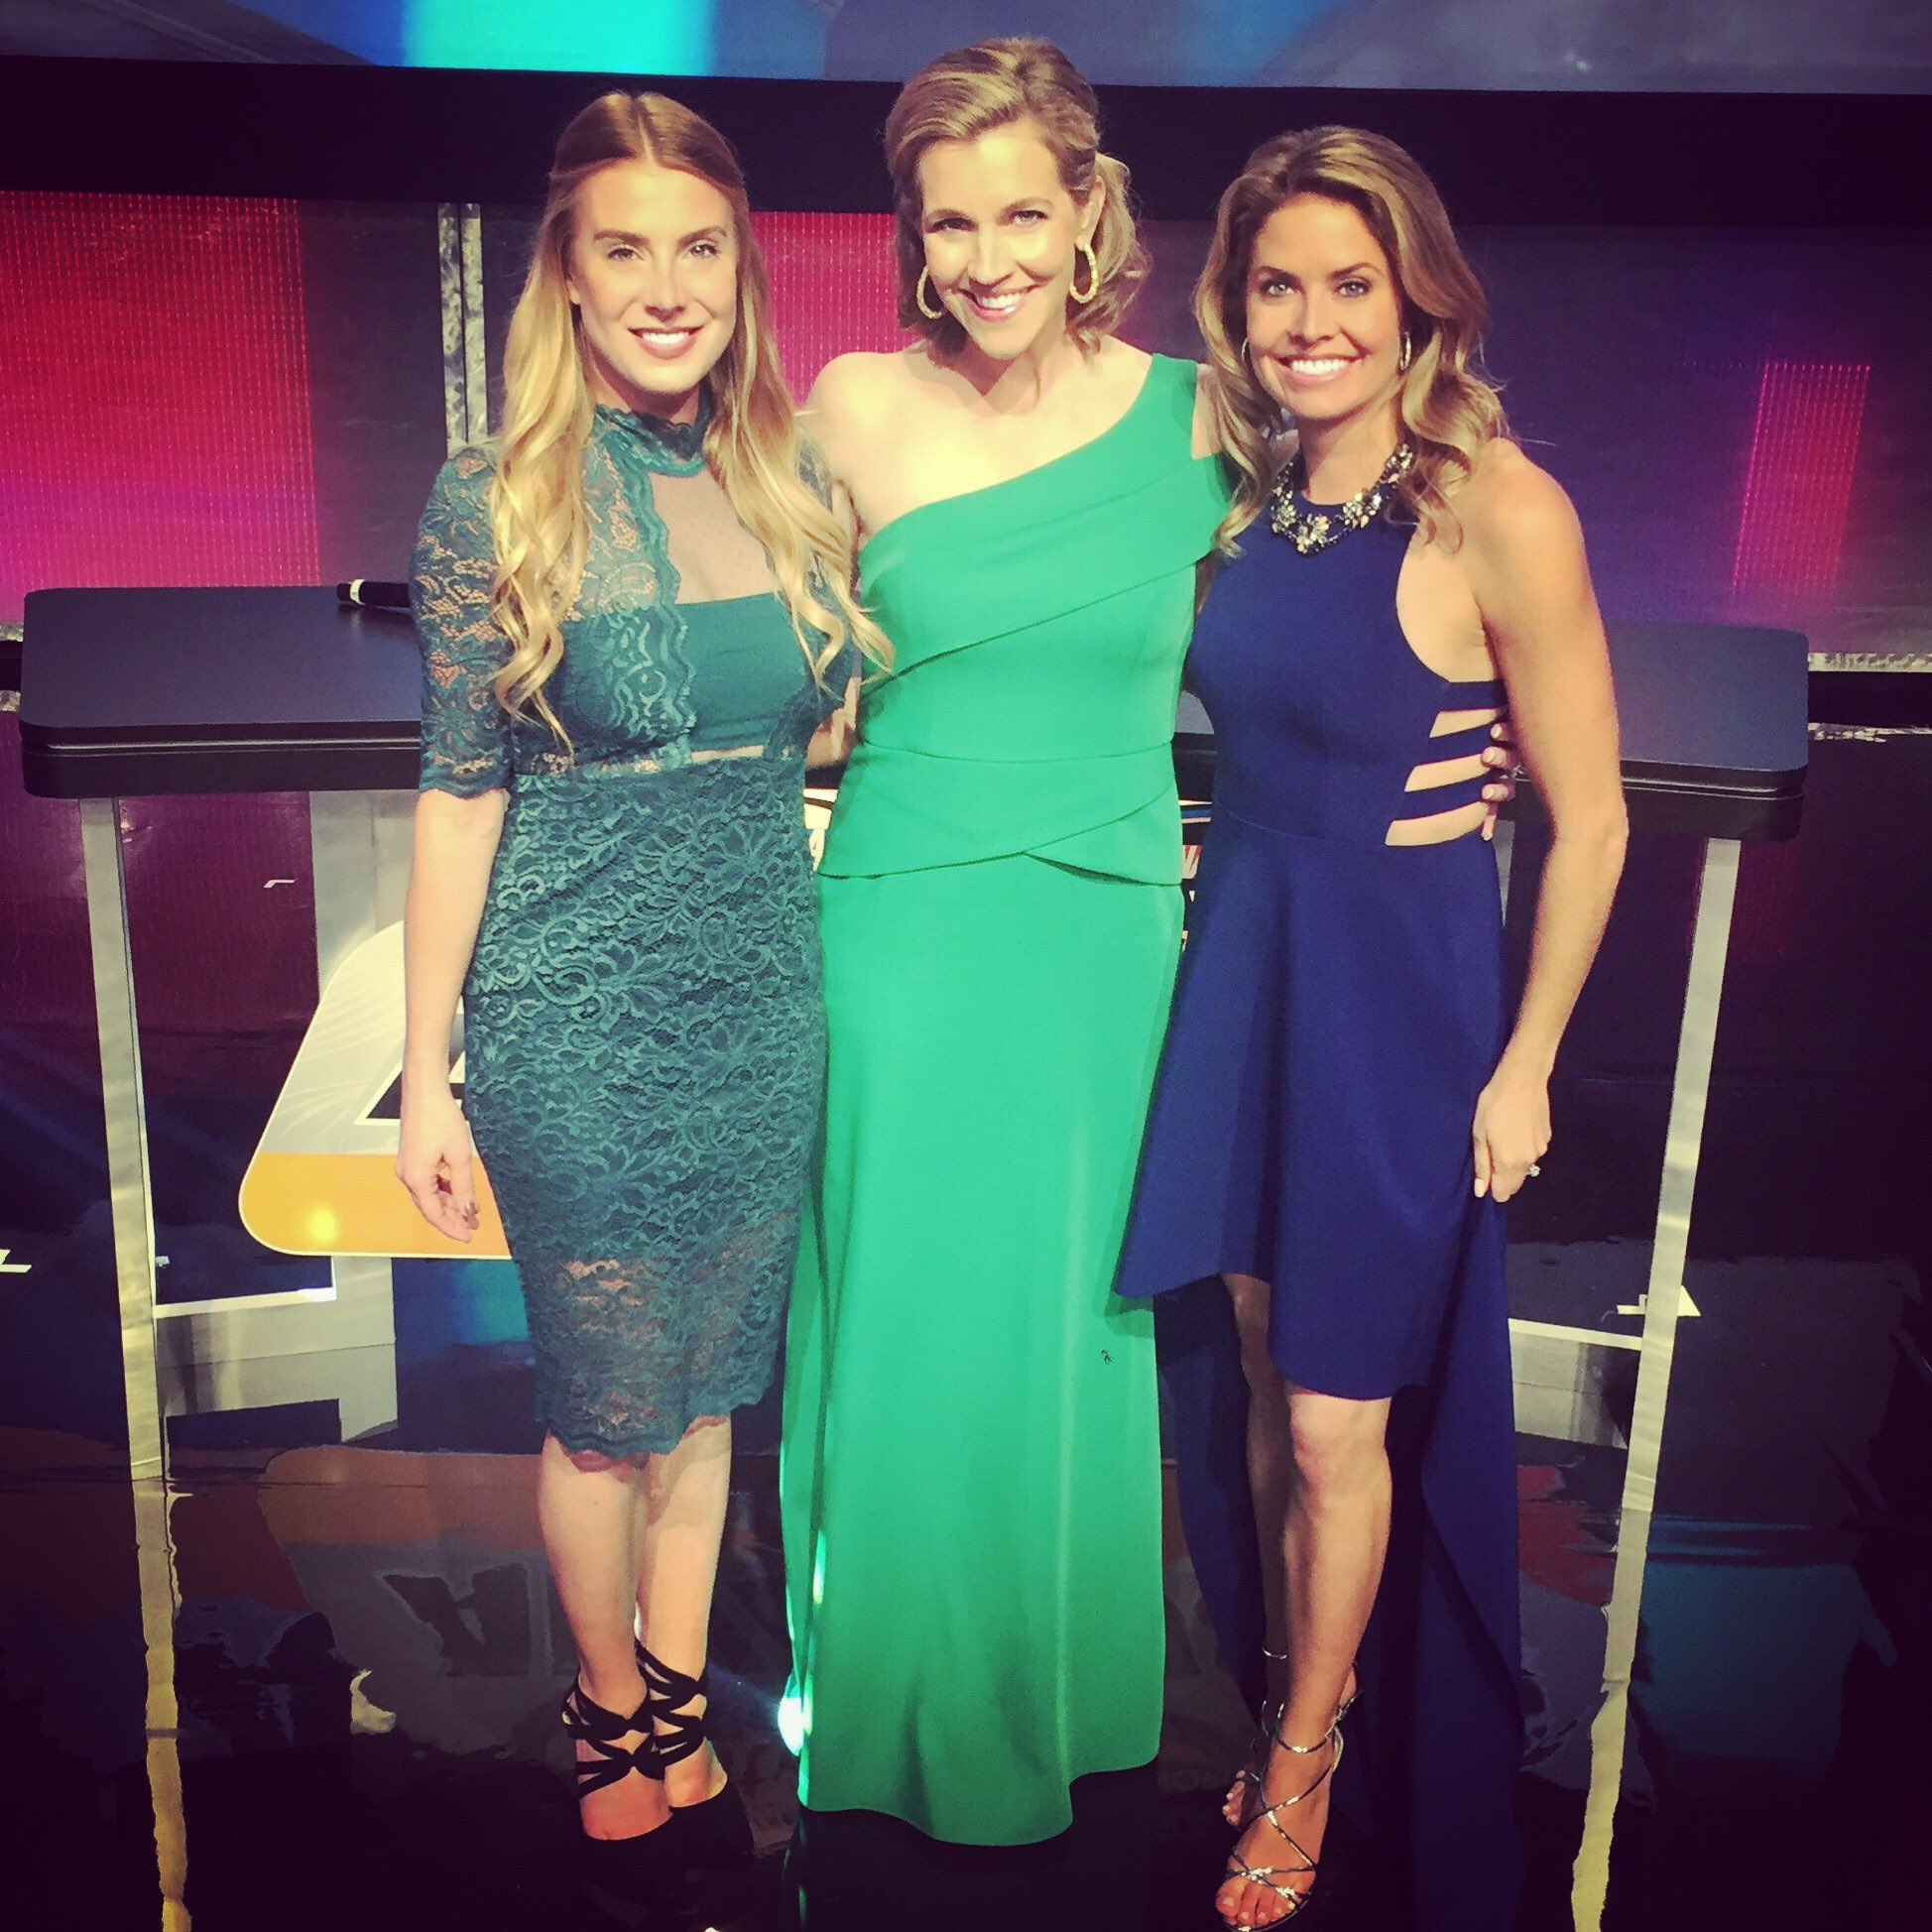 """Kaitlyn Vincie On Twitter: """"Such A Fun Night Co-hosting"""